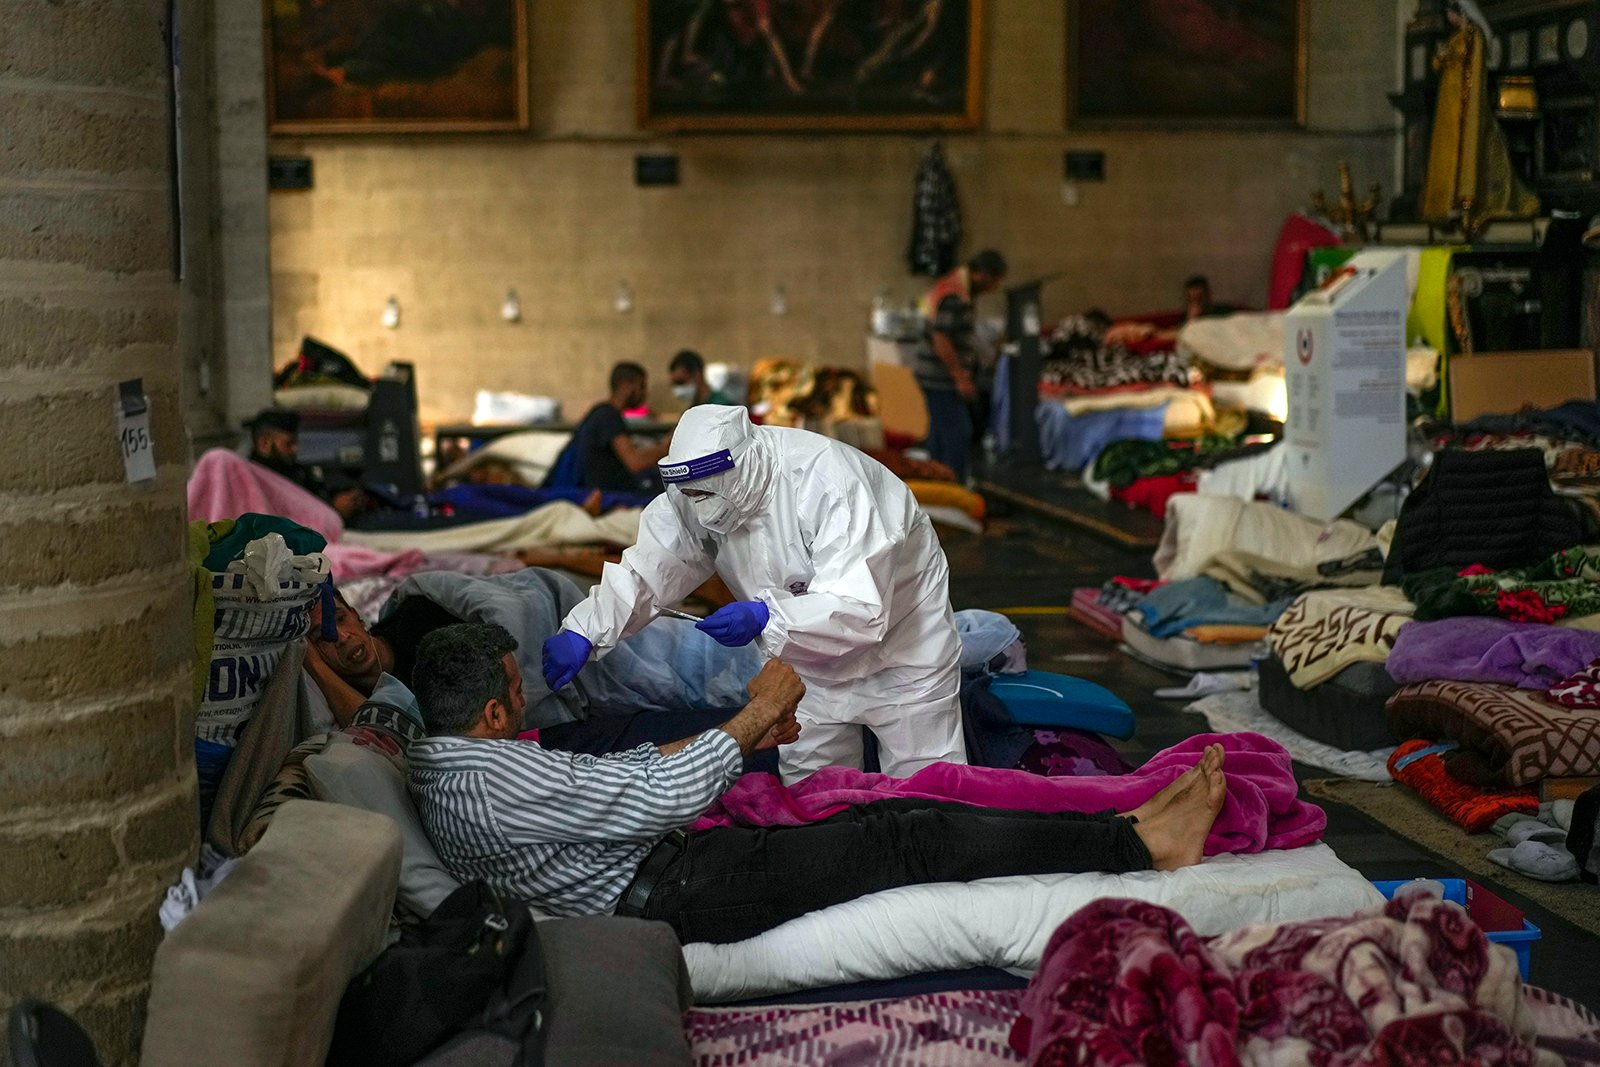 A Red Cross health worker attends a man on hunger strike as he occupies the Saint-Jean-Baptiste-au-Beguinage church in Brussels, Monday, June 7, 2021. Dozens of migrants without official papers who have been occupying the church since last February, with permission of the priest, began a hunger strike on May 23, 2021, to draw the attention of Brussels authorities to their plight. (AP Photo/Francisco Seco)